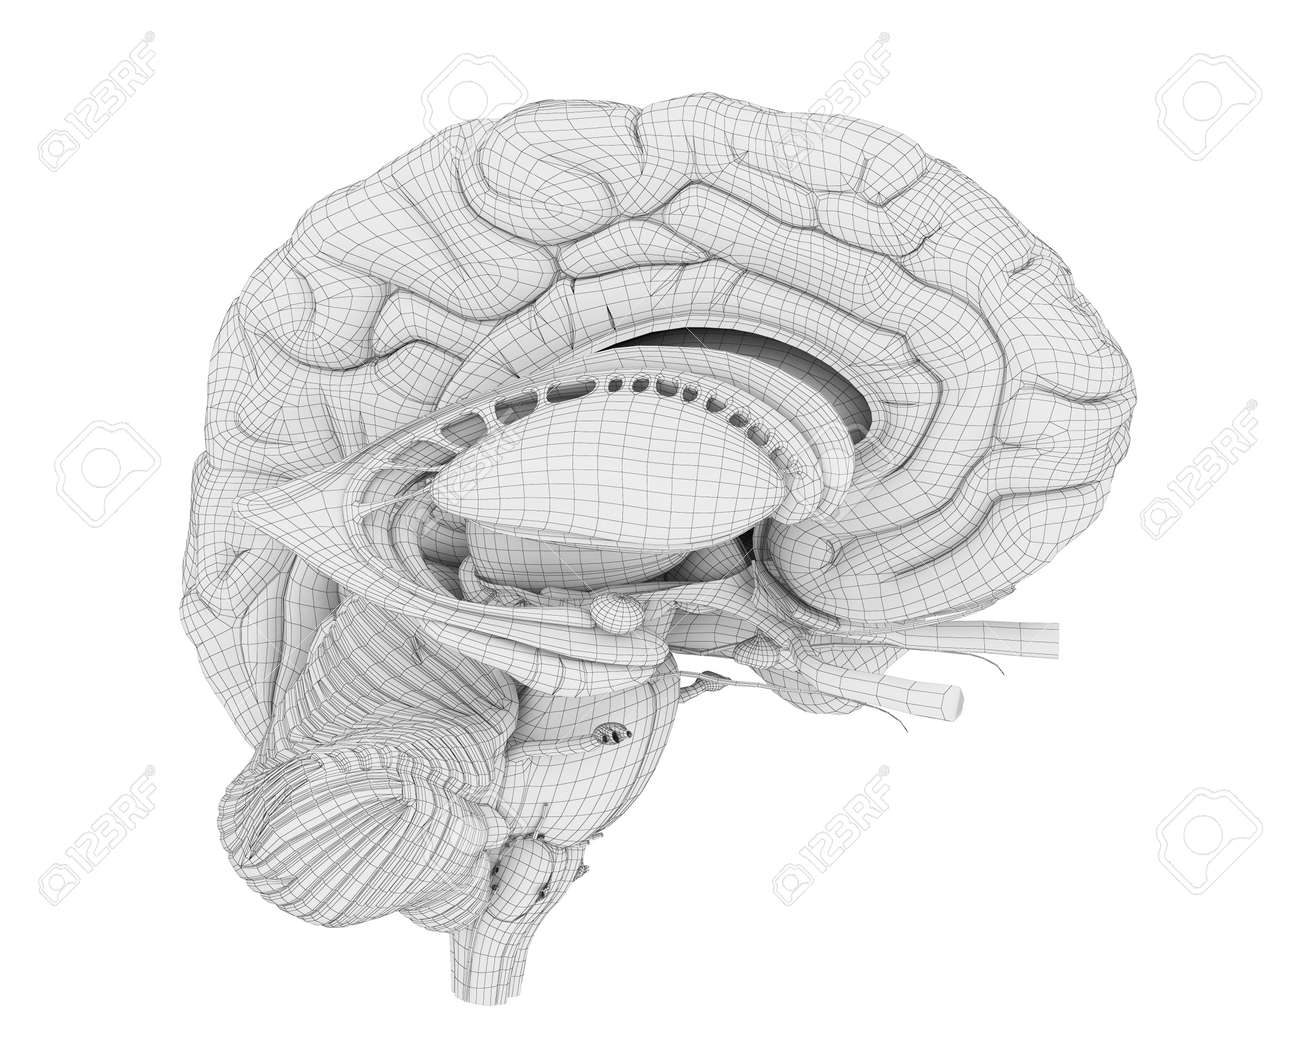 3d Rendered Medically Accurate Illustration Of The Brain Anatomy